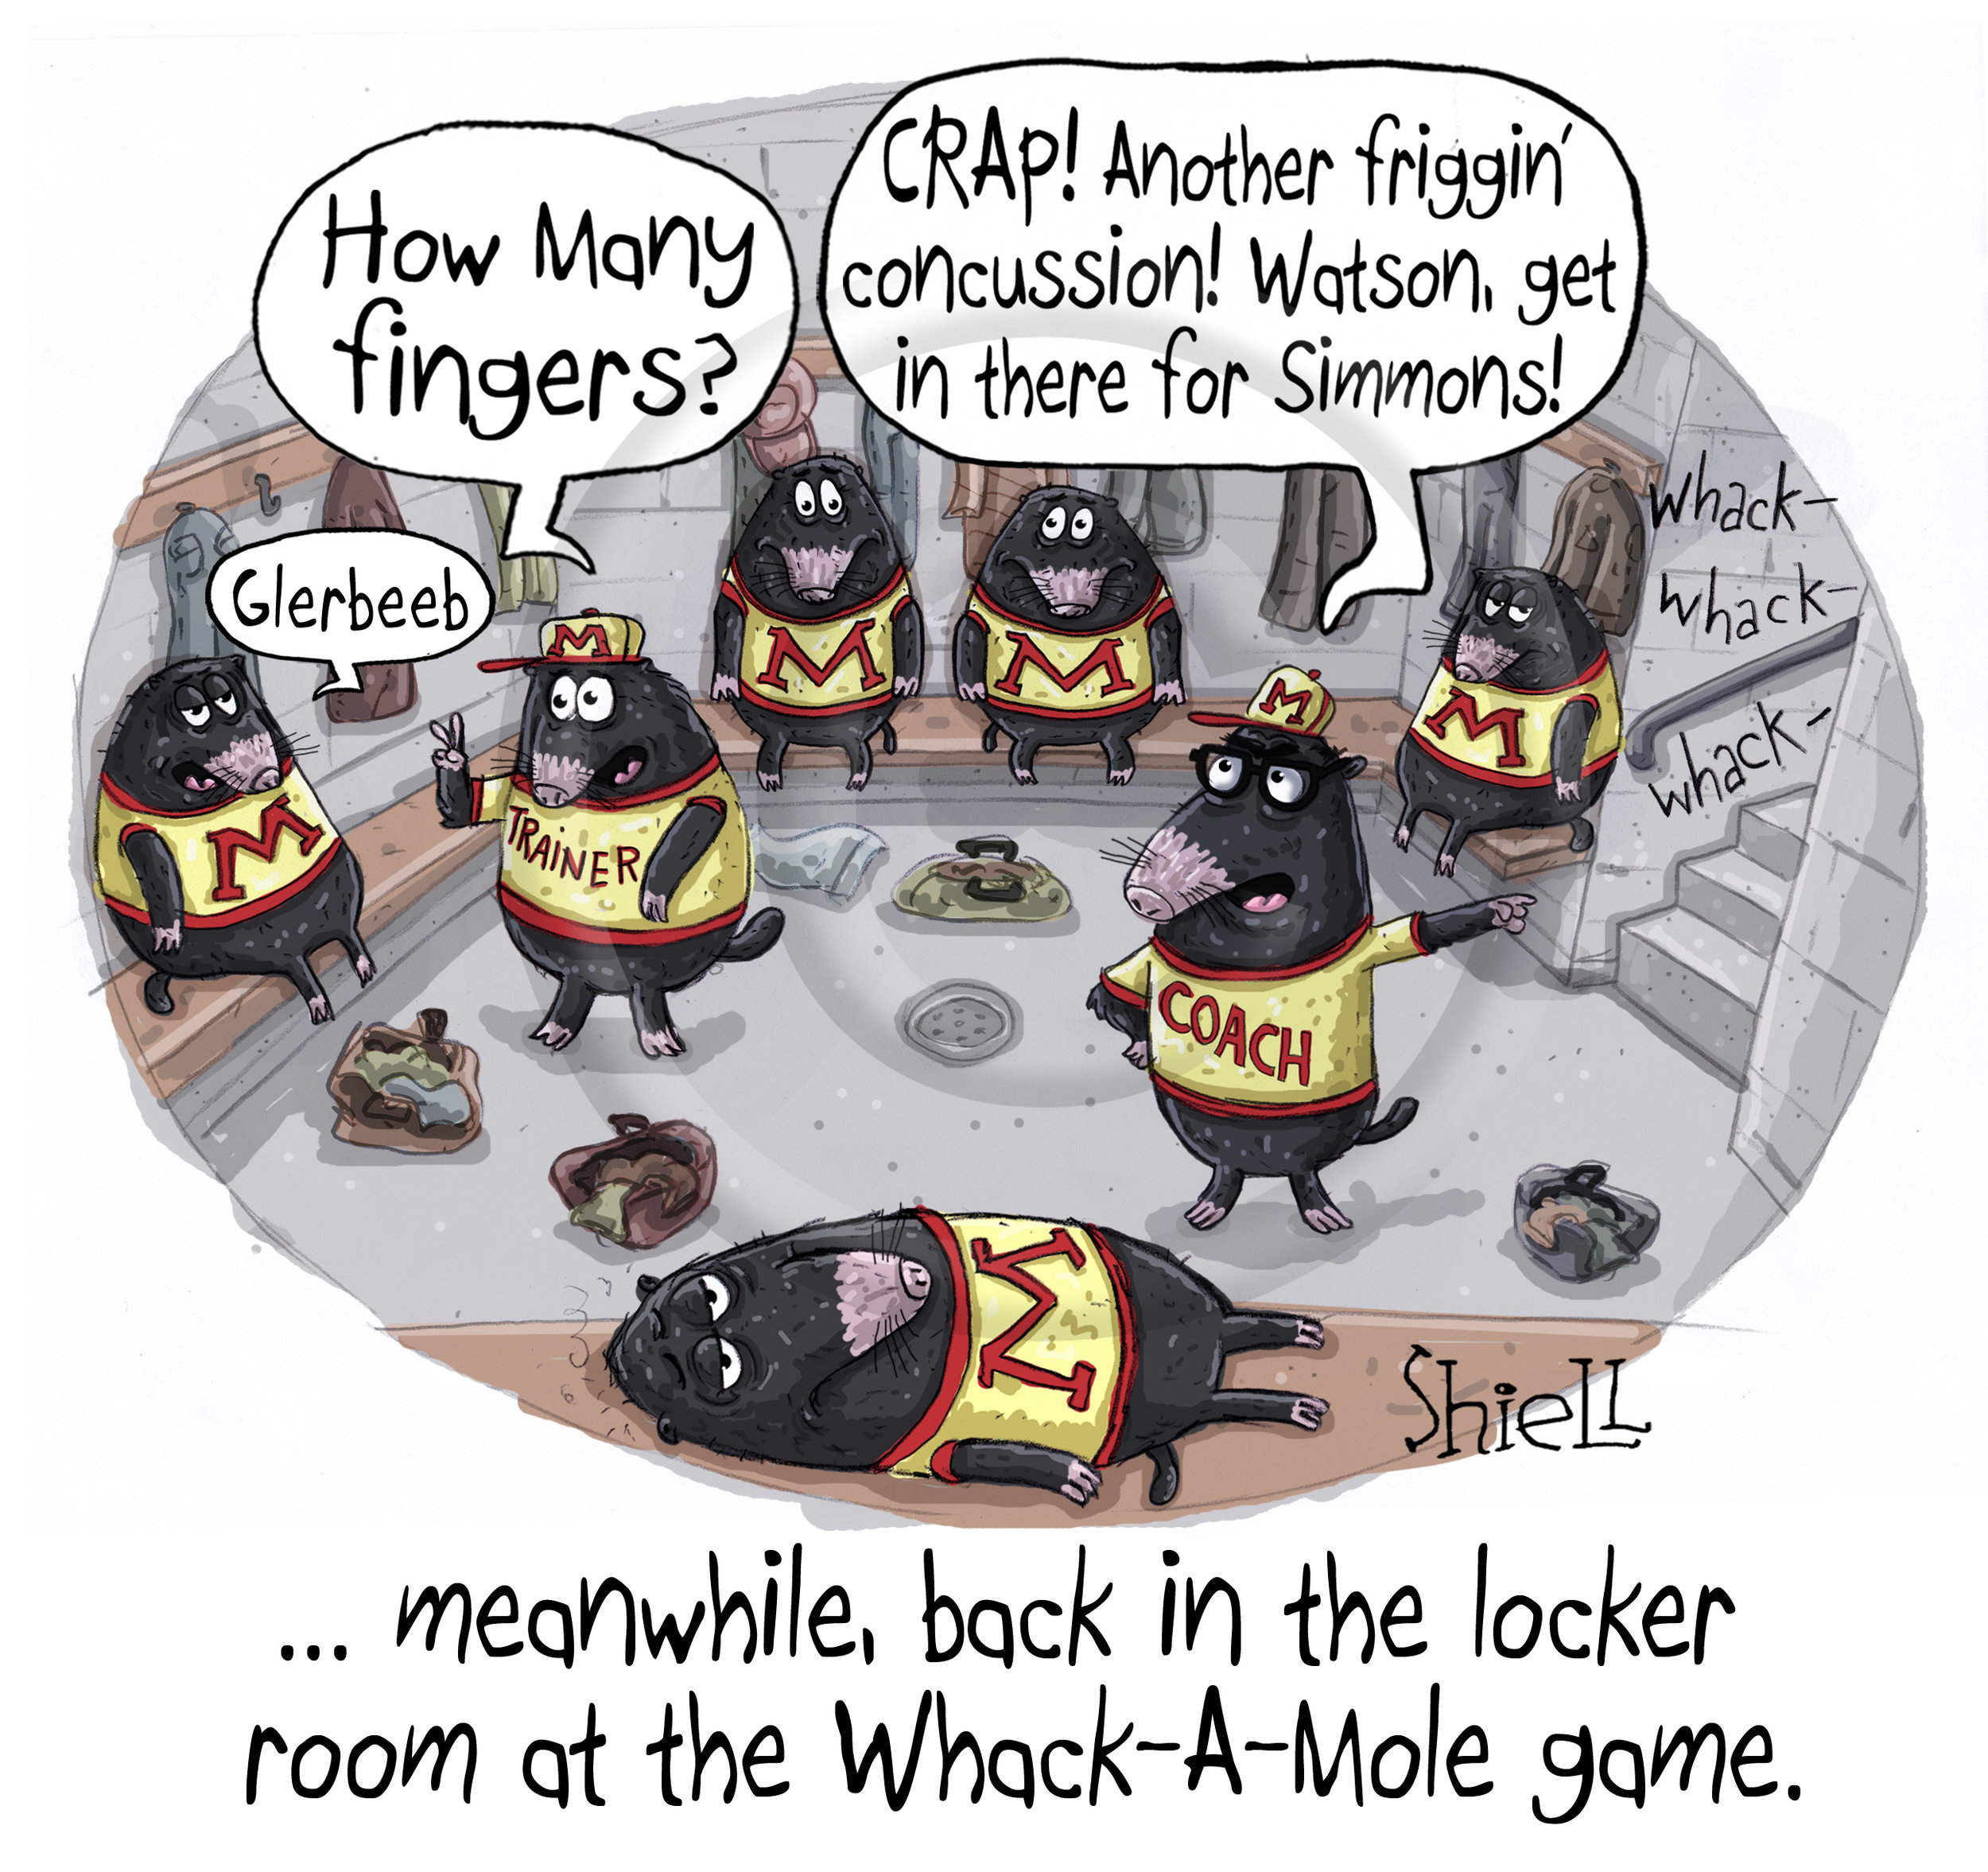 The locker room at the whack-a-mole game.